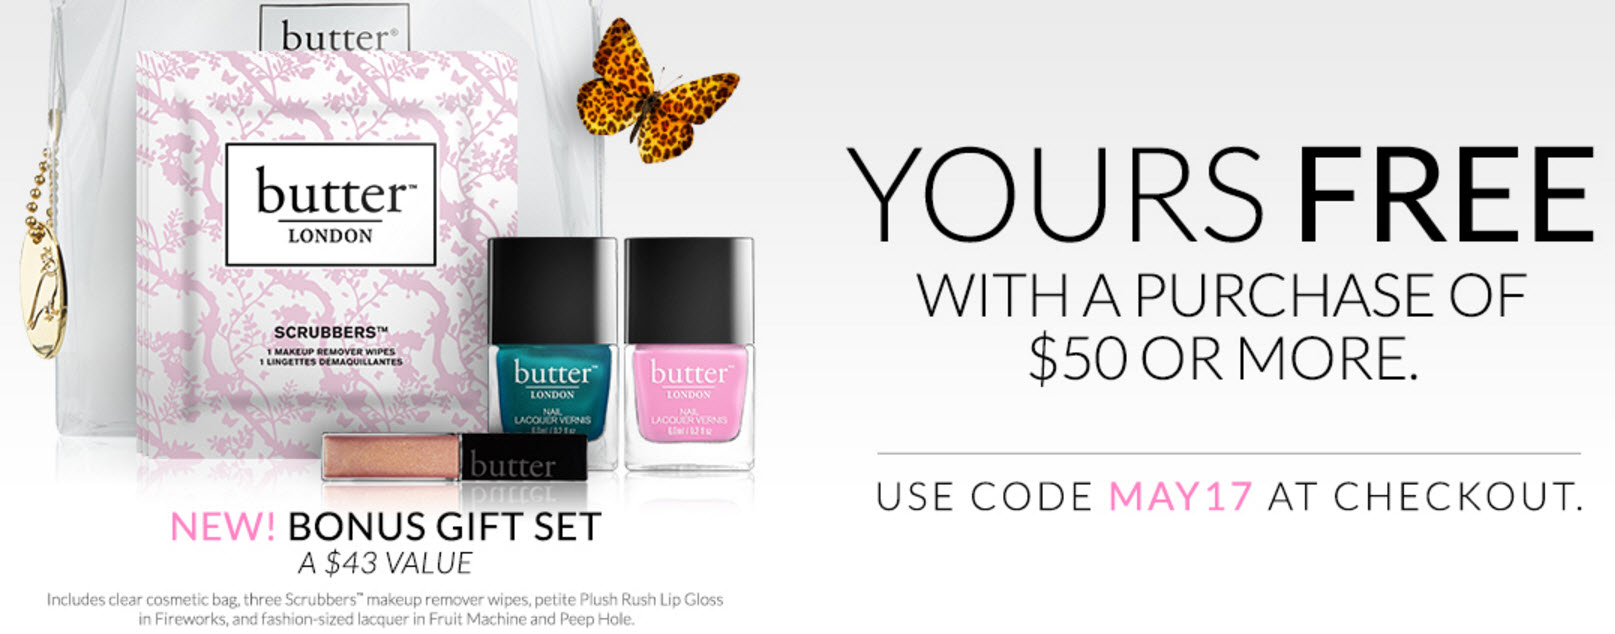 Receive a free 7-piece bonus gift with your $50 Butter London purchase